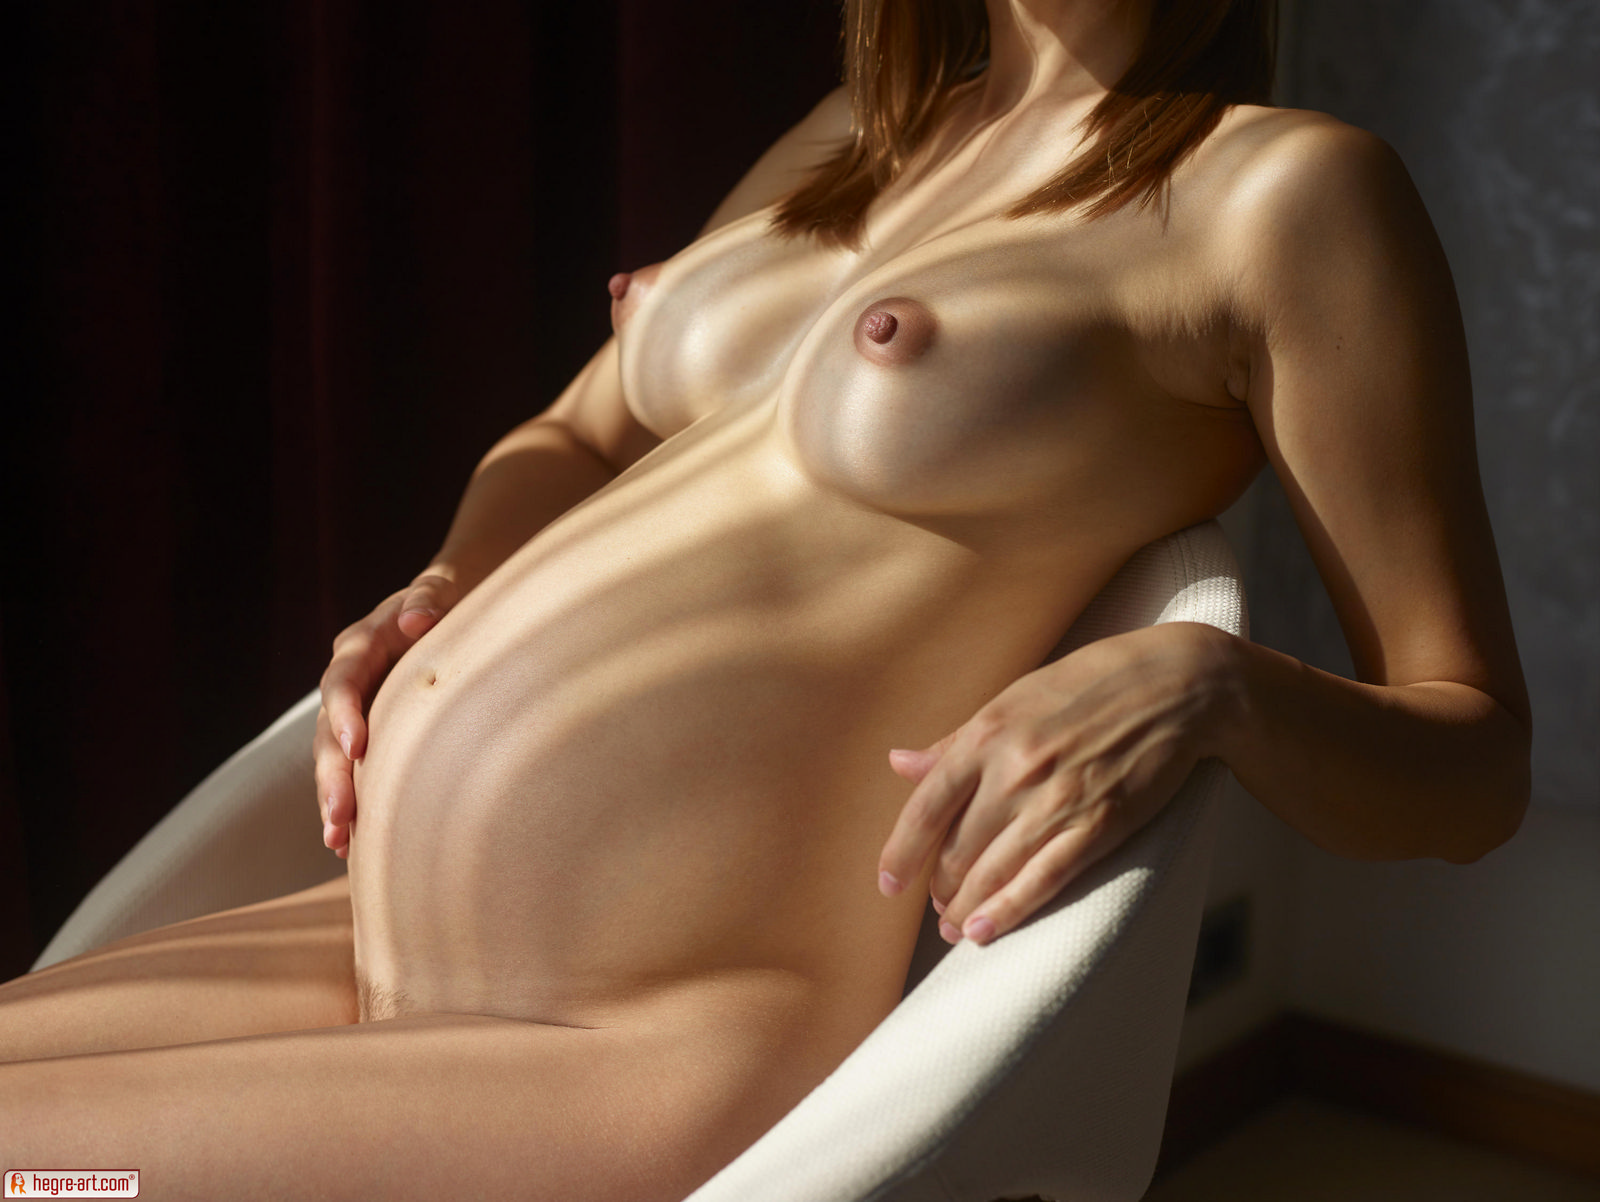 Sabrina In Pregnant Is Sexy By Hegre-Art  Erotic Beauties-3142